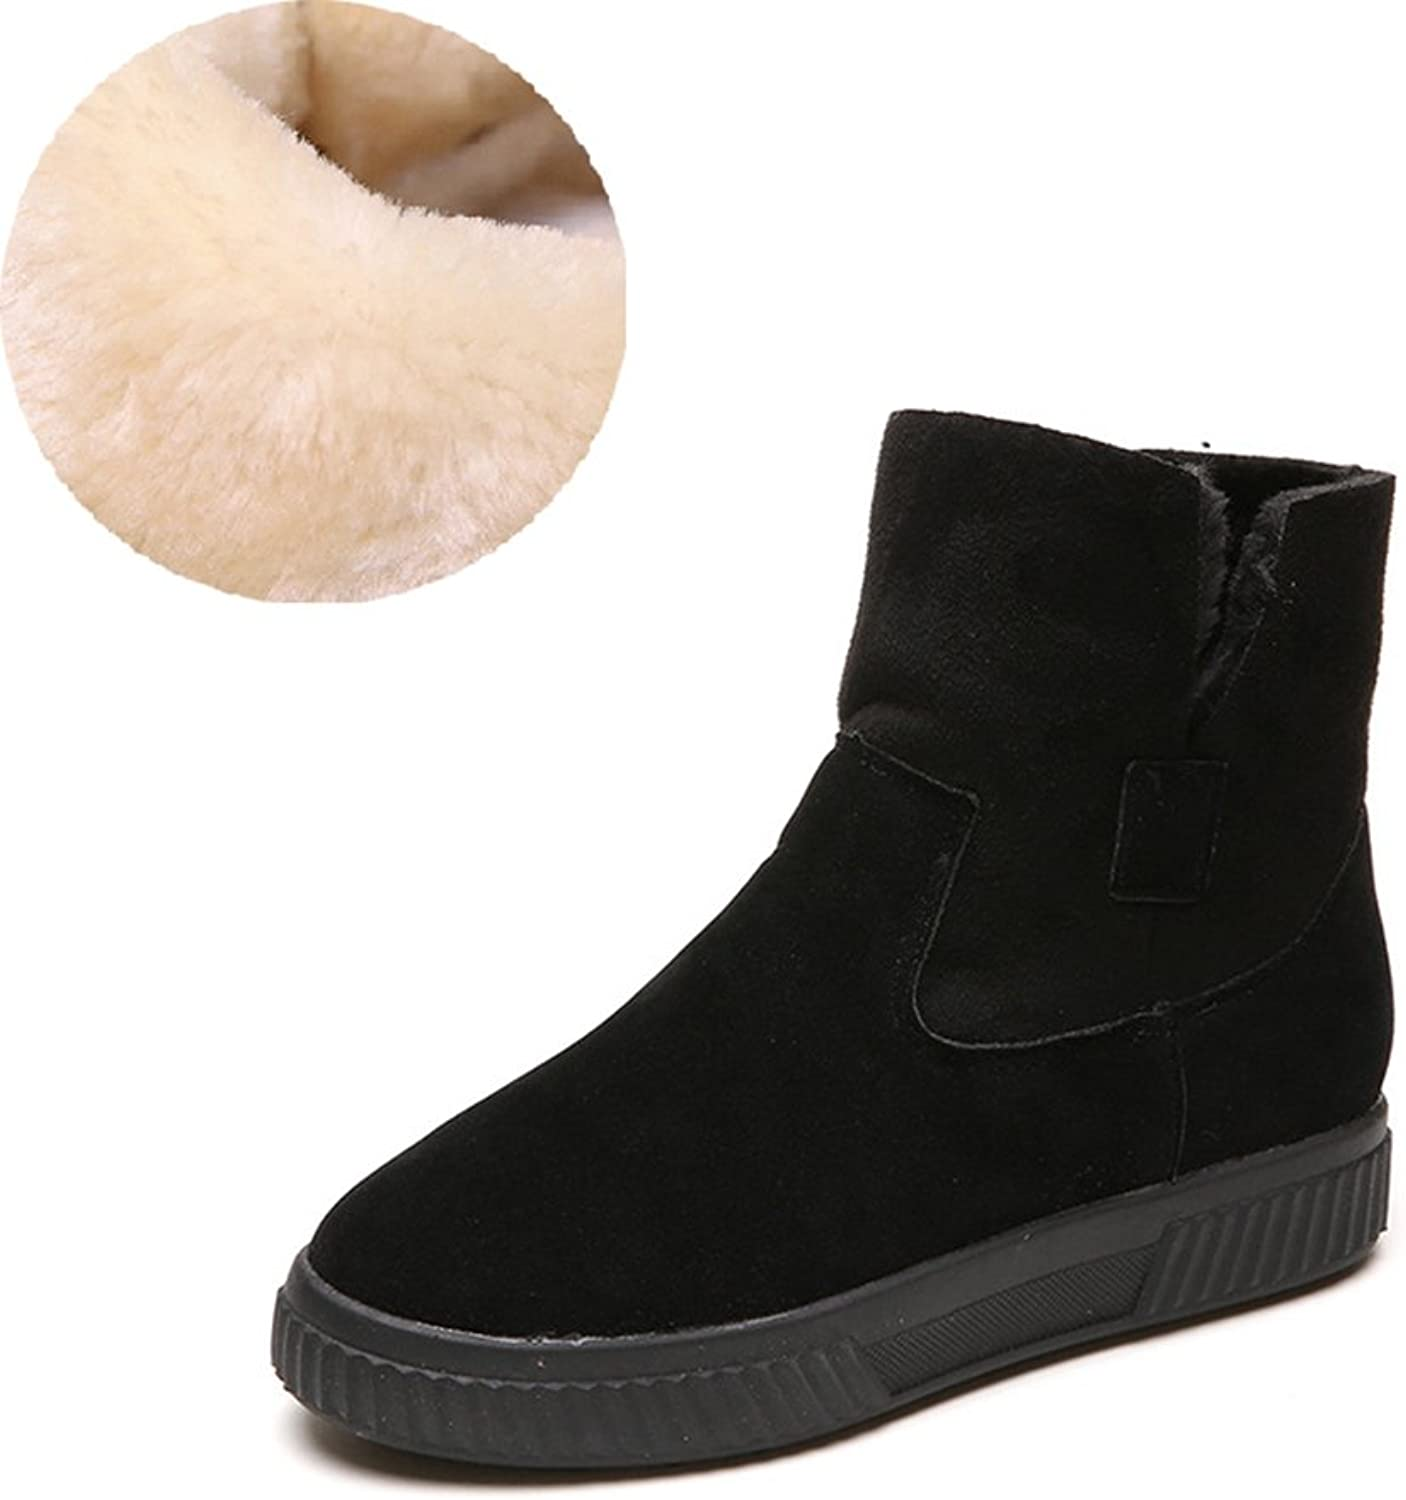 Btrada Winter Womens Warm Thick Fur Lining Snow Boots-Flat Foldable Casual Ankle Bootie shoes